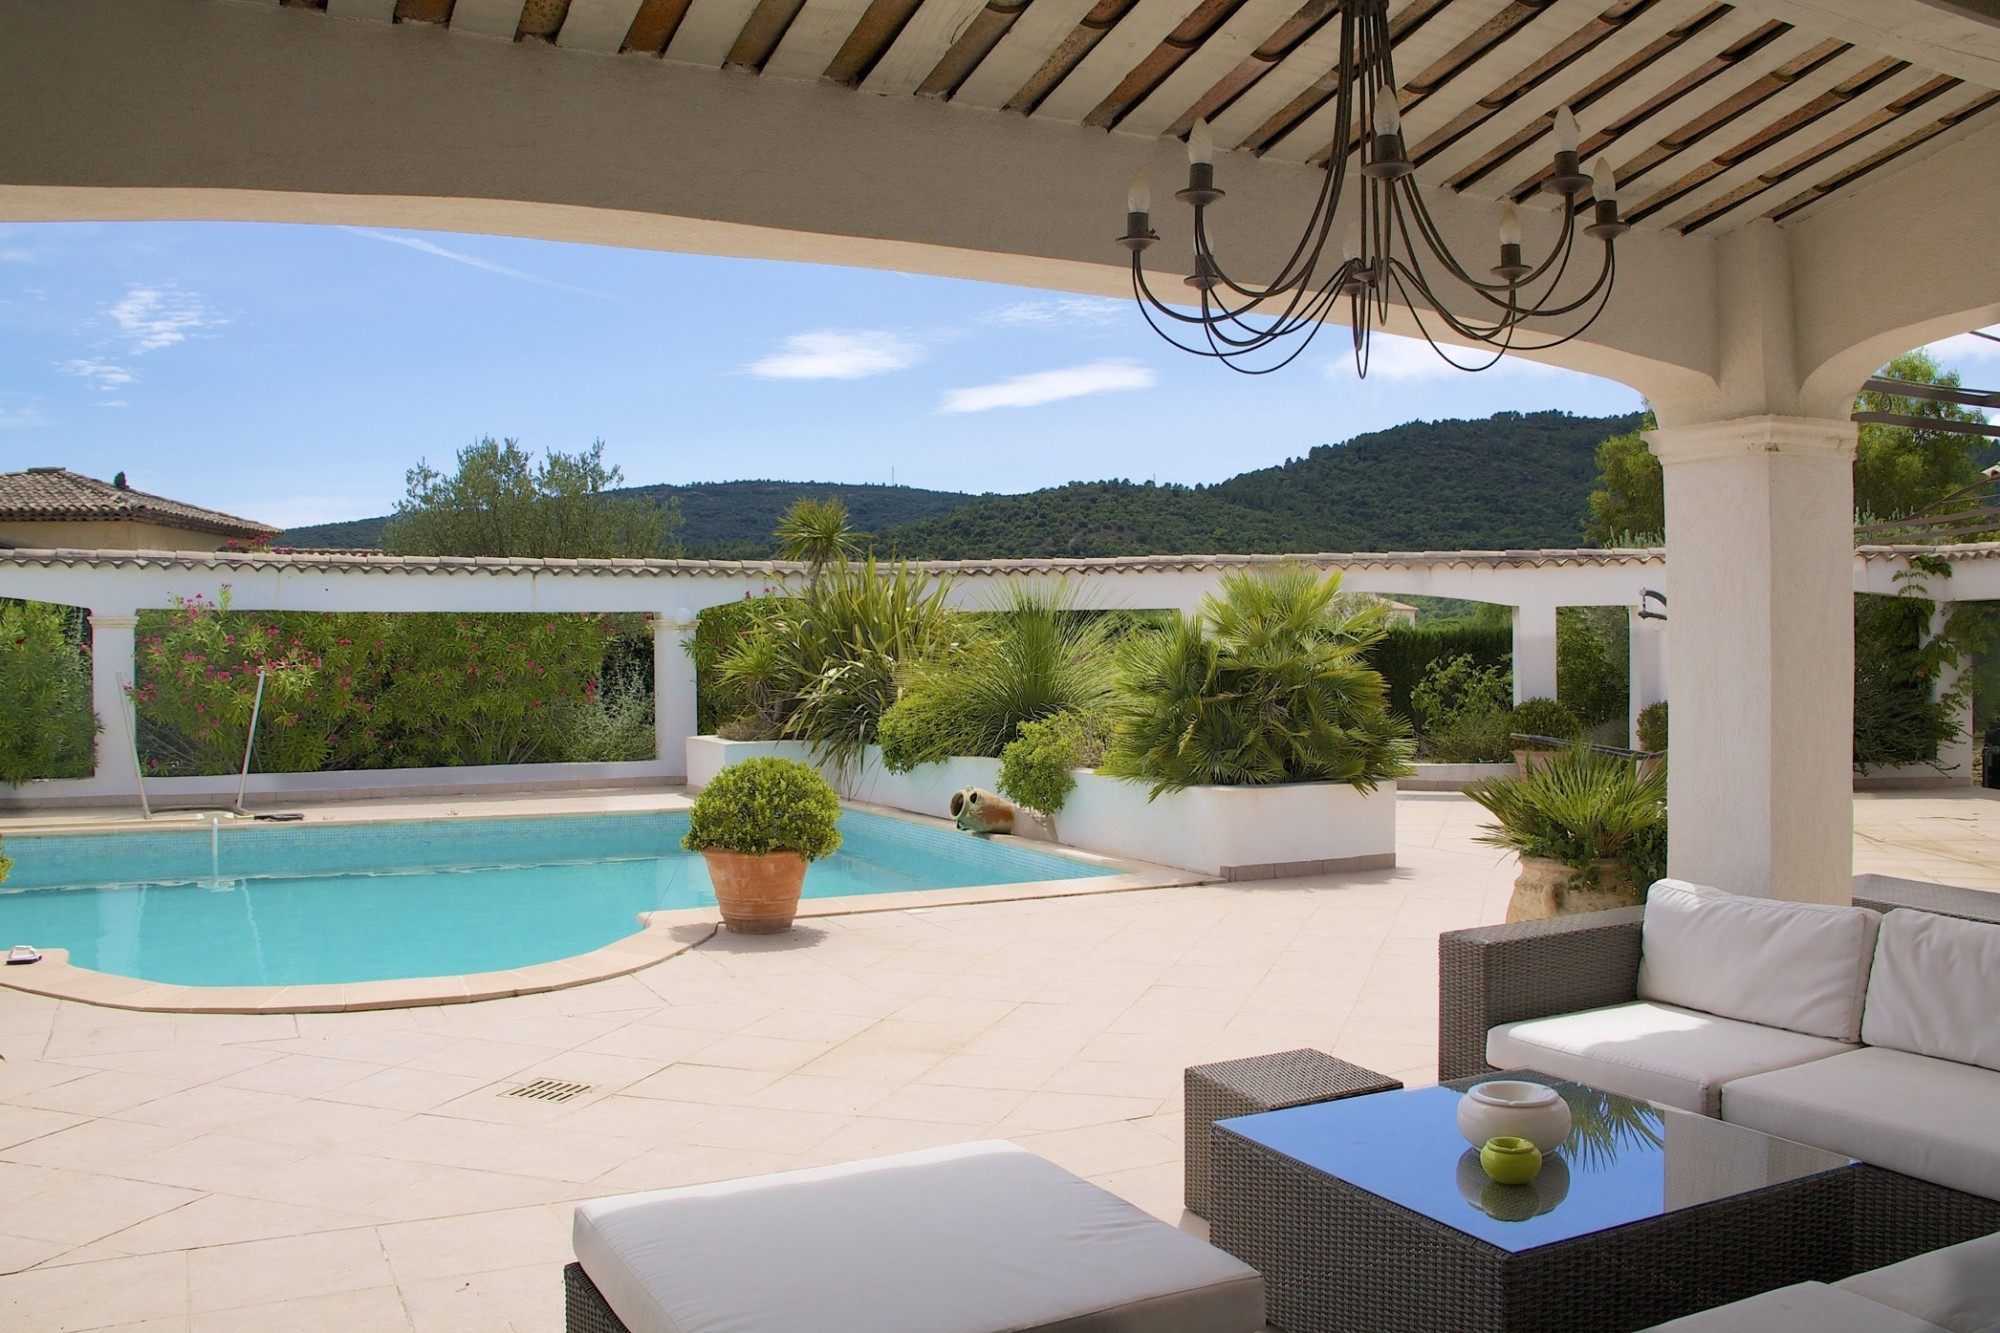 Sale french riviera jager immobilier - Jardins et terrasses photos ...